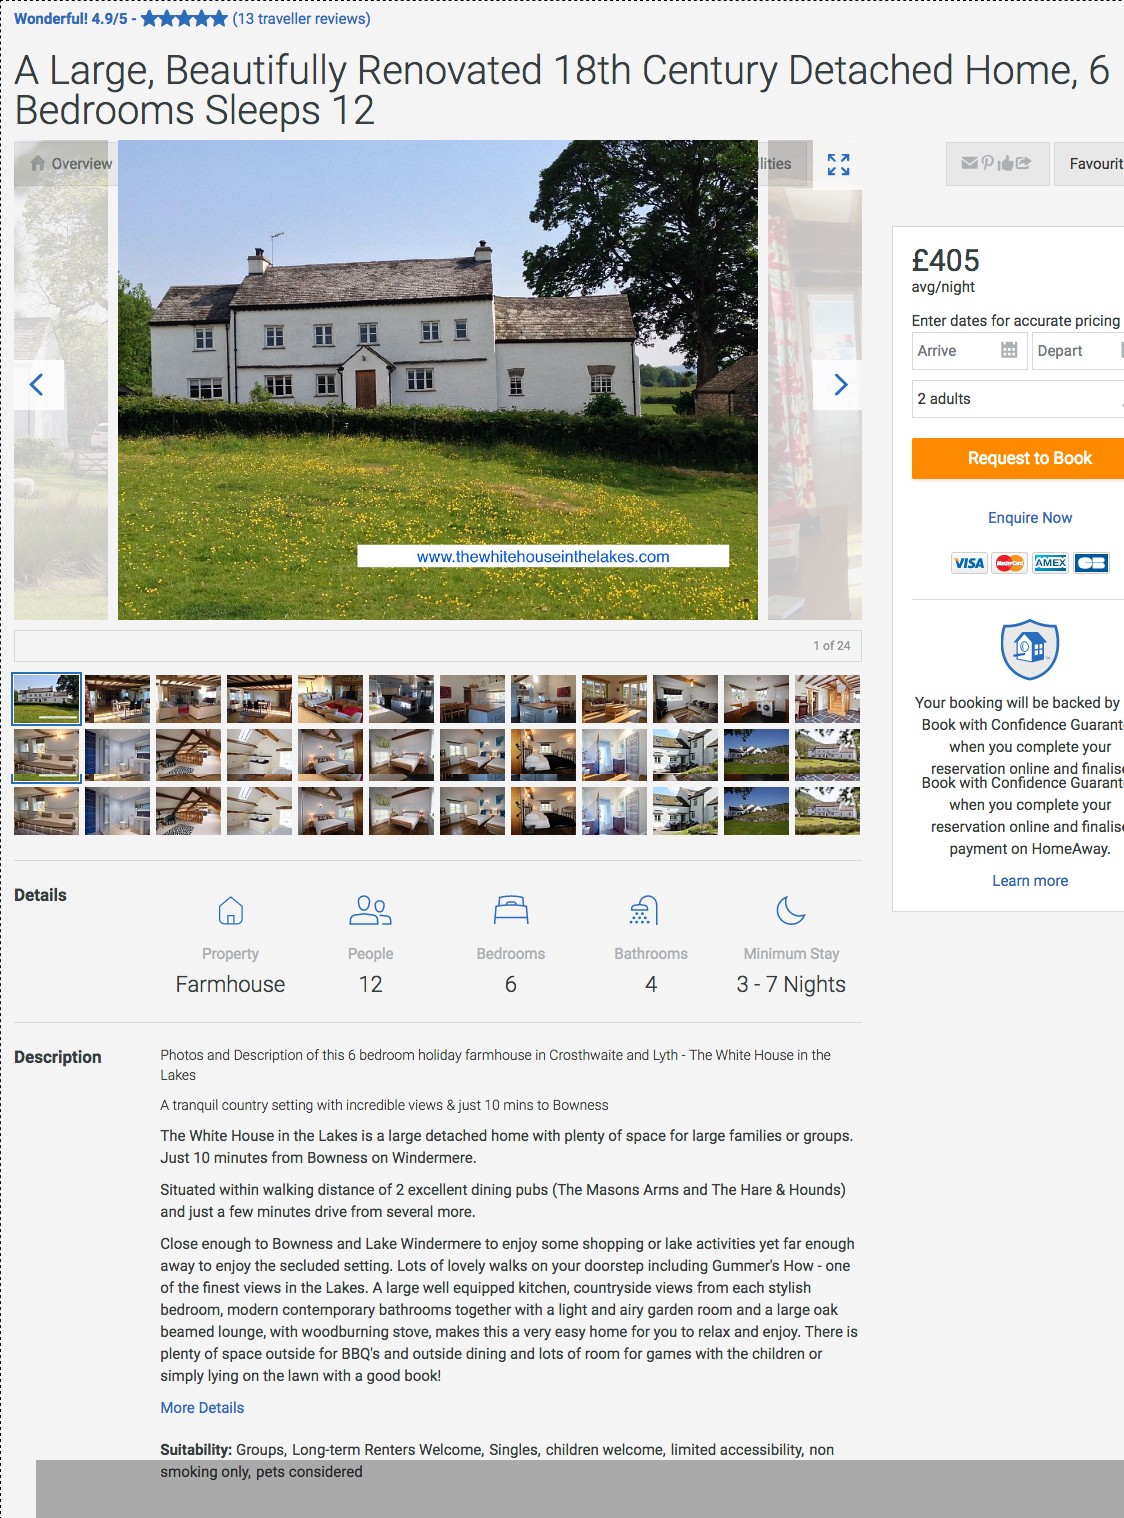 The White House in the Lakes large beautifully renovated 18th Century Detached Home